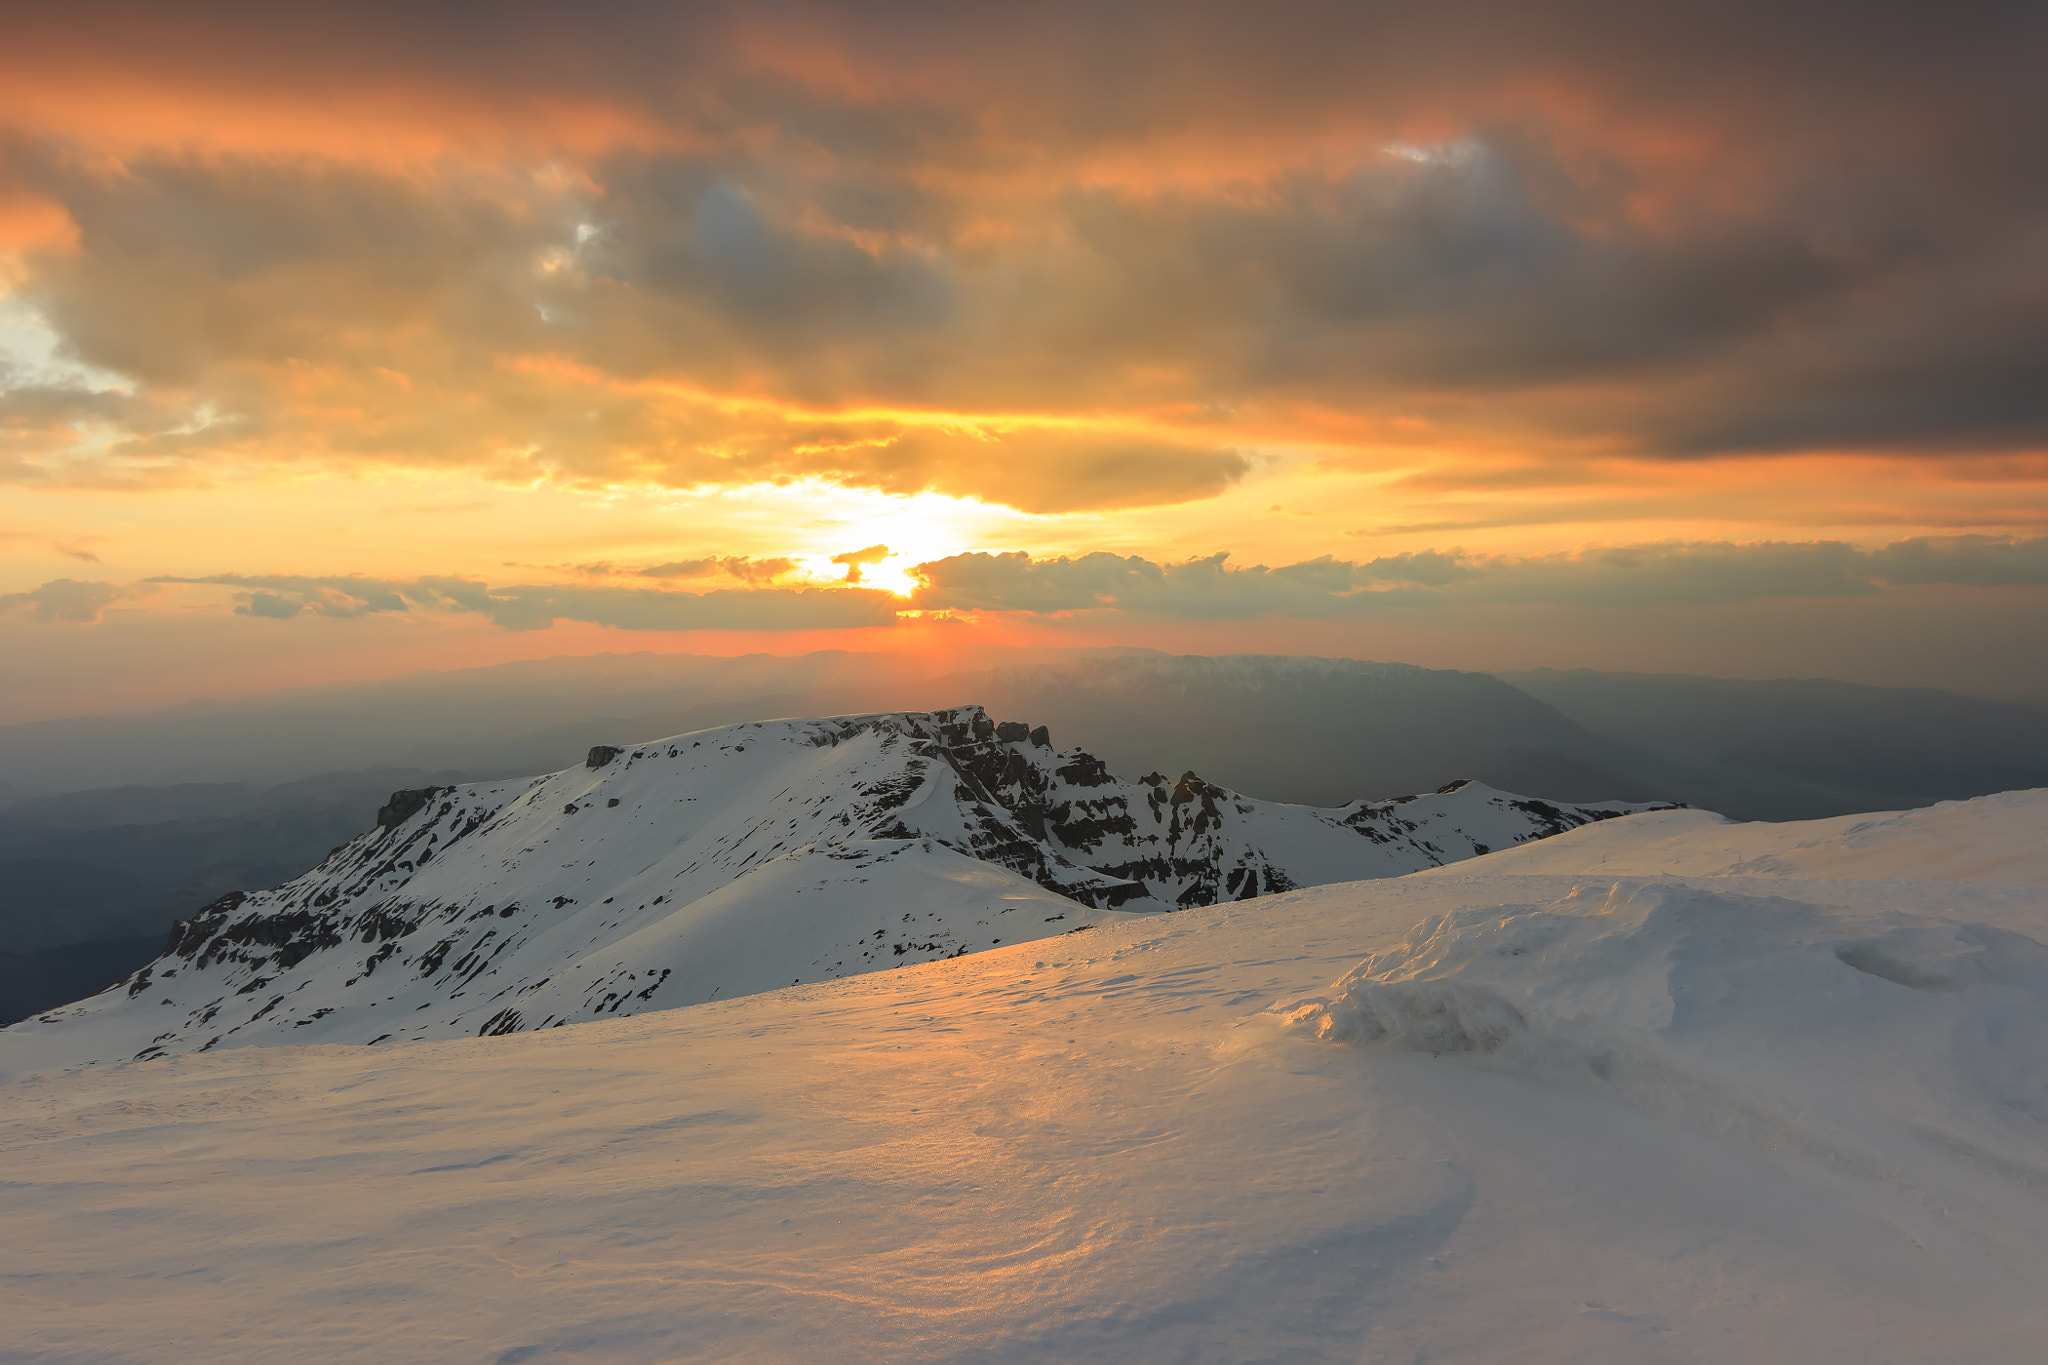 Photograph Magical sunset in the Bucegi mountains,Carpathians,Romania by Janos Gaspar on 500px